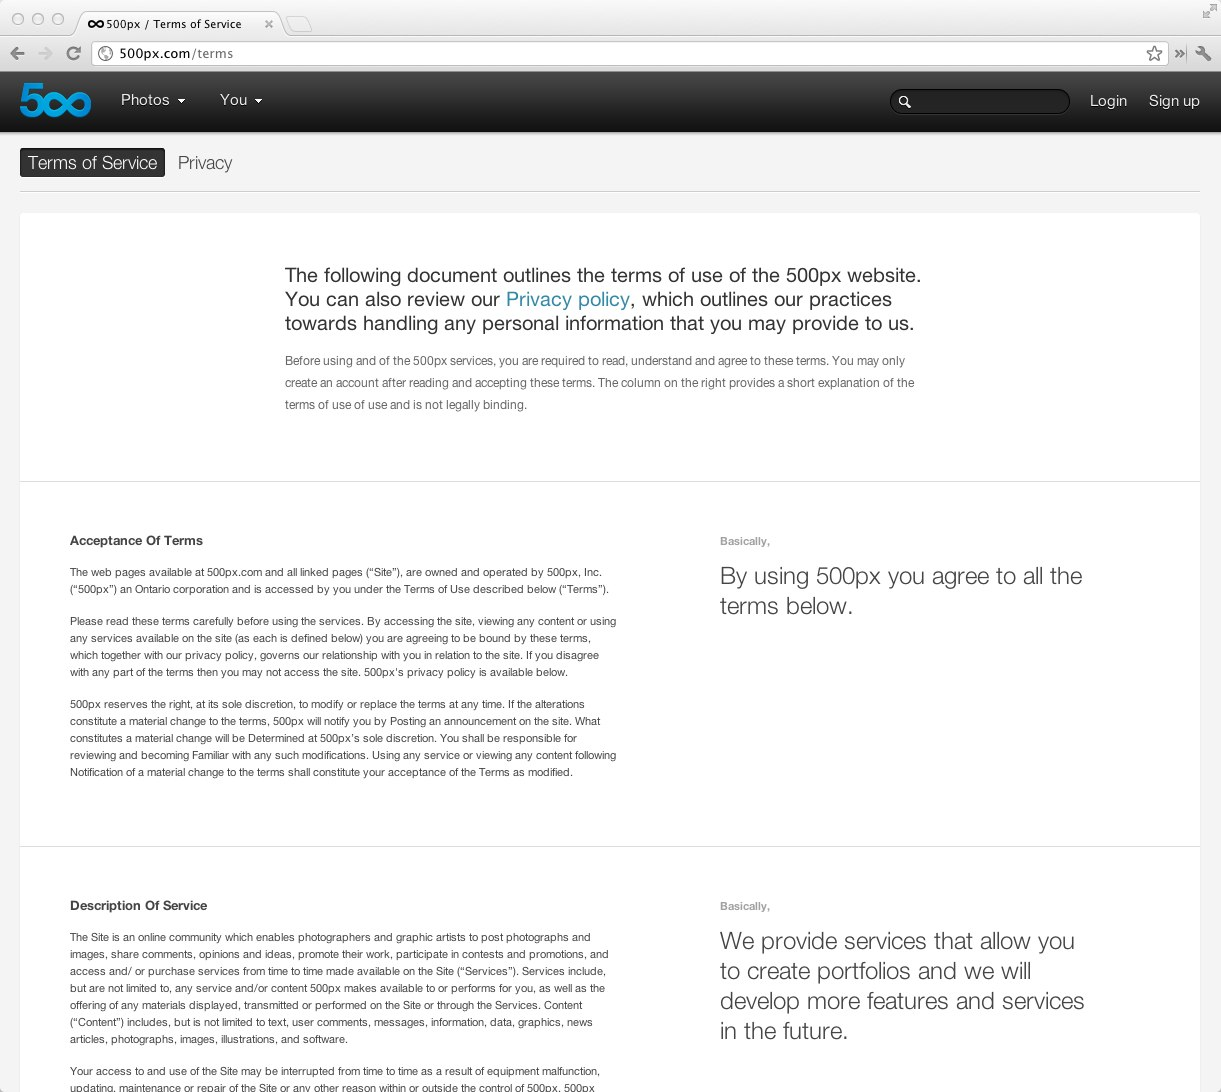 500px terms and conditions page